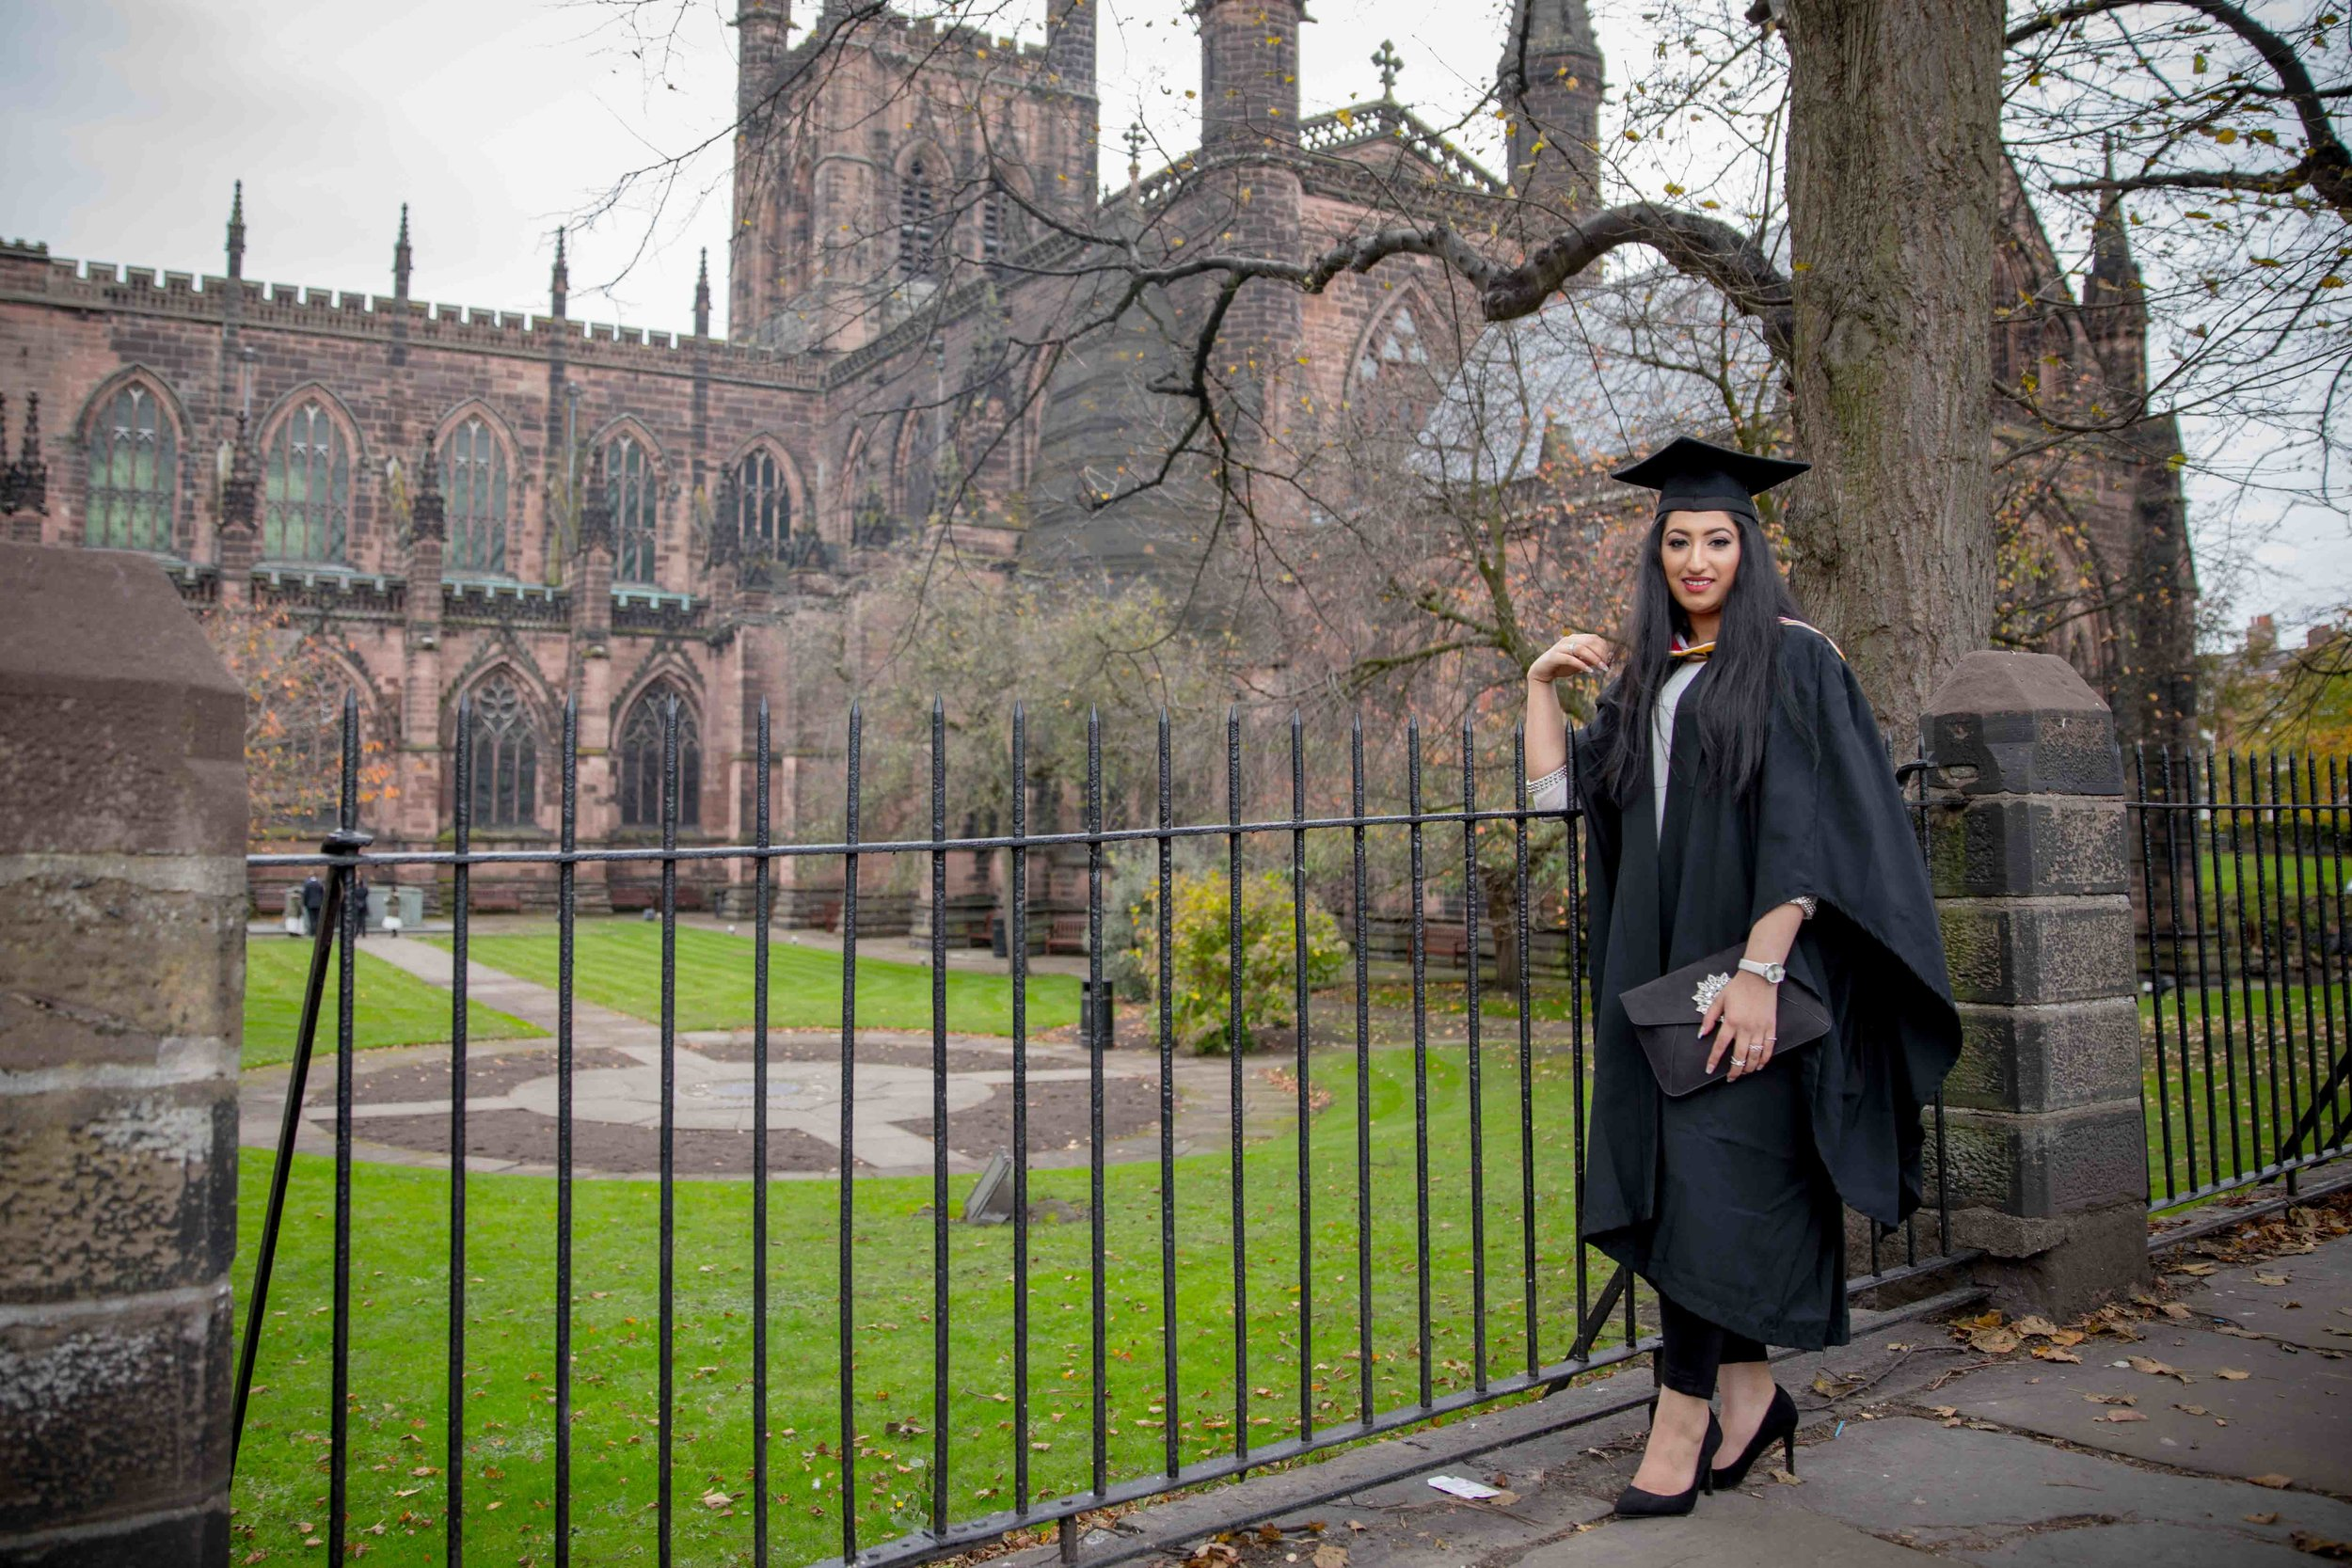 chester-university-graduation-ceremony-photography-photoshoot-graduation-photographer-Bristol-London-Cardiff-Birmingham-Chester-Natalia-smith-photography-3.jpg